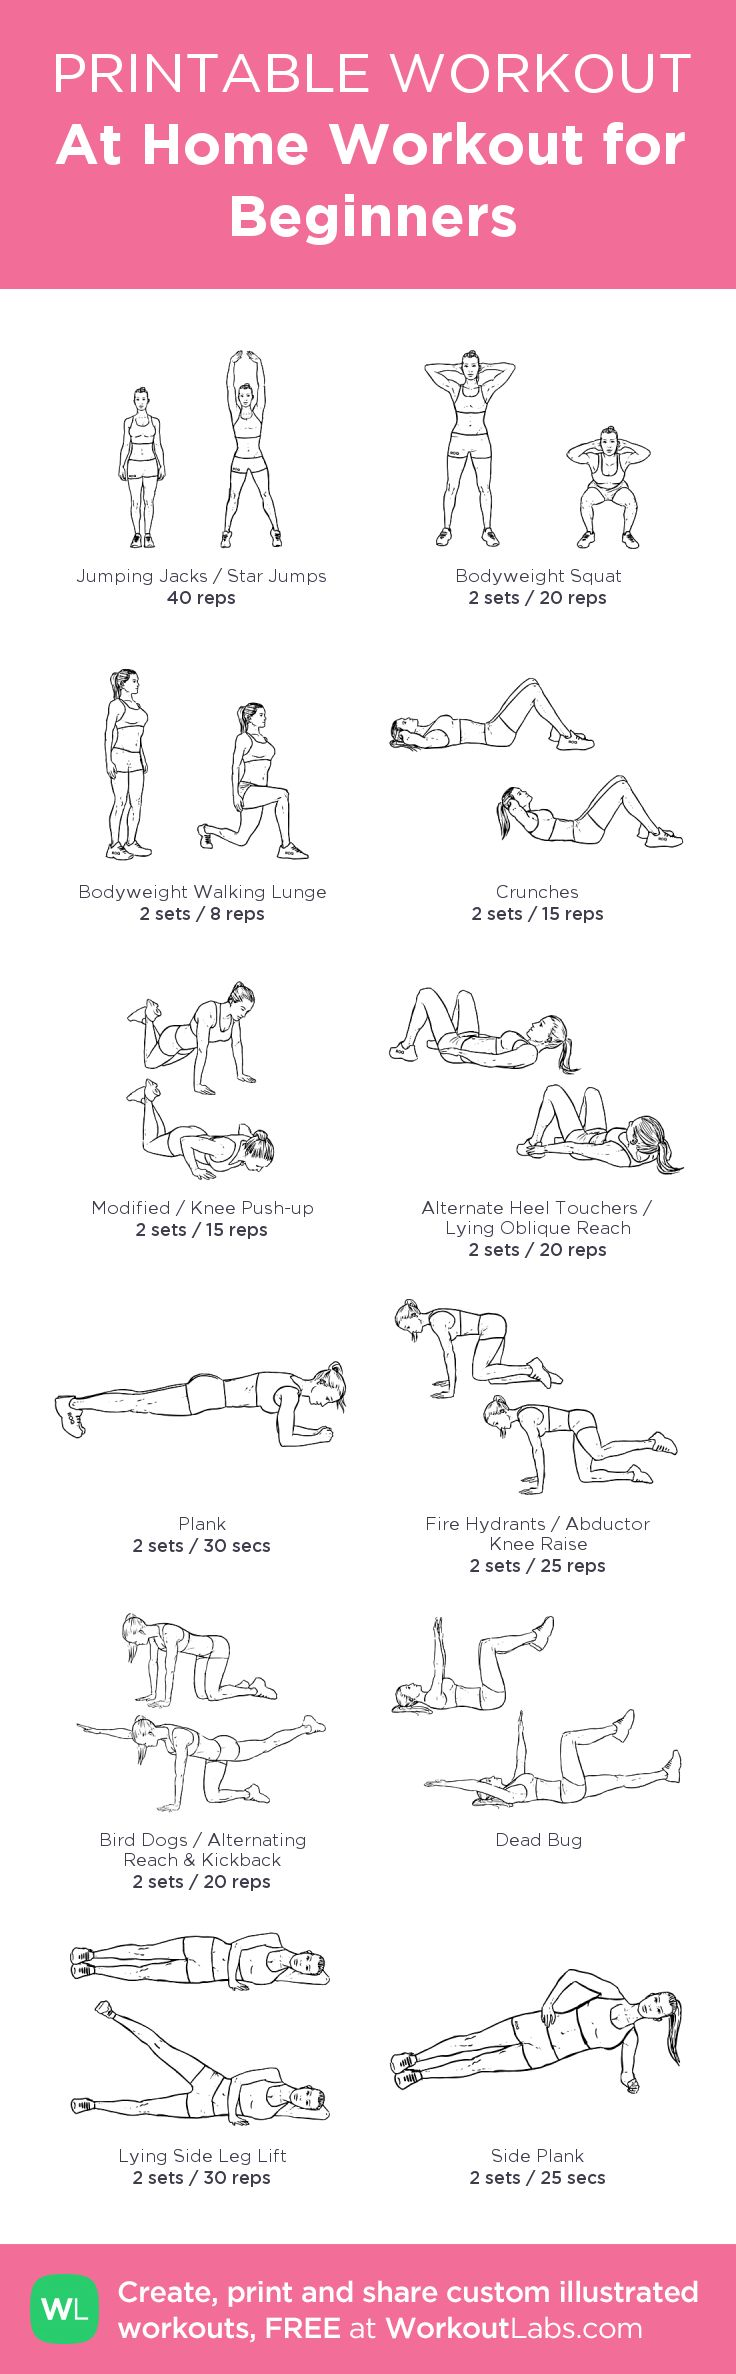 At Home Workout for Beginners: my visual workout created at WorkoutLabs.com •…